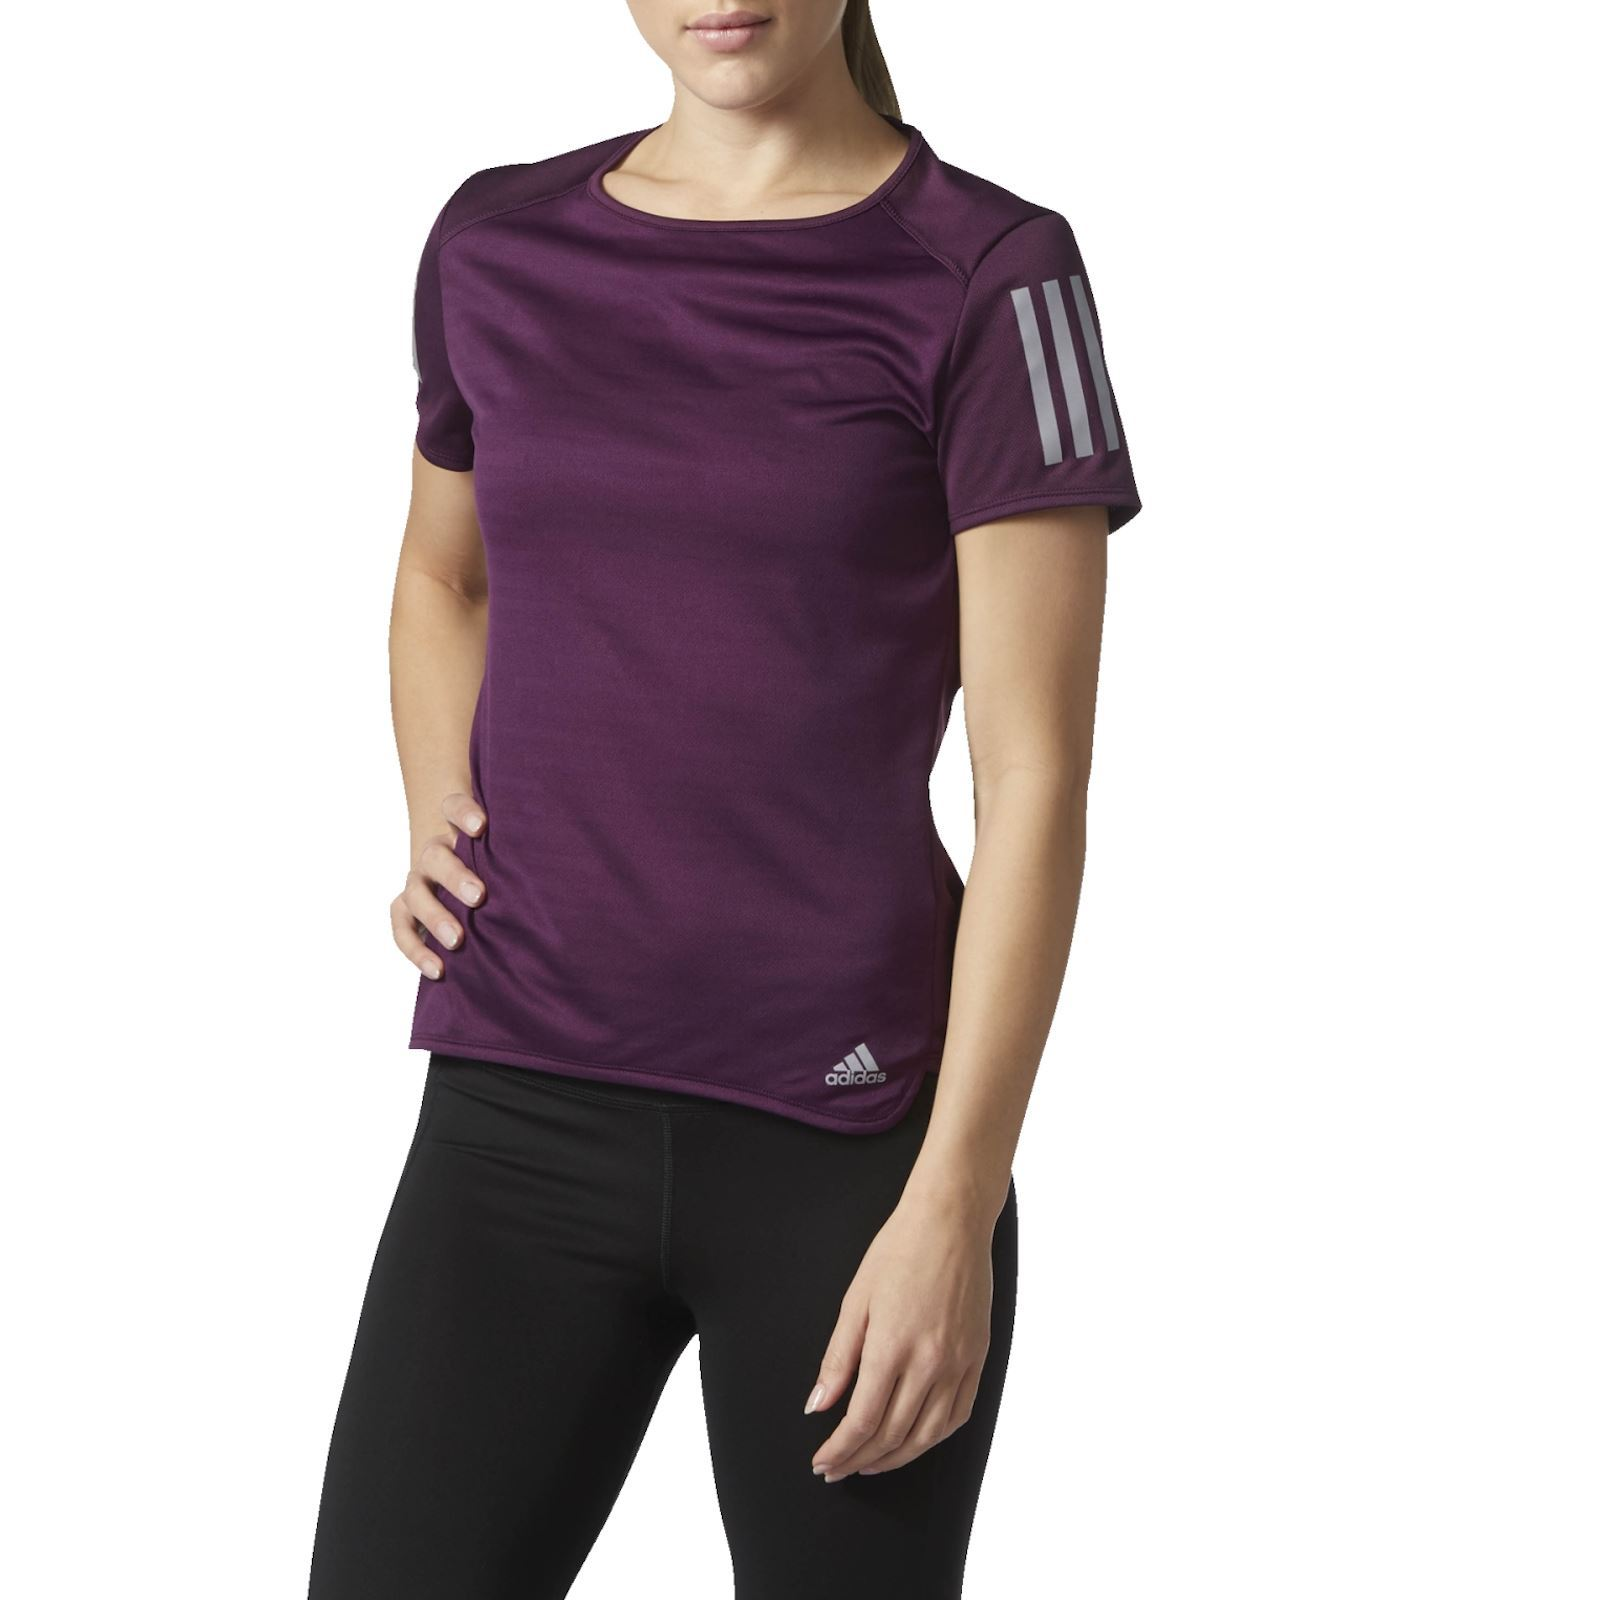 Adidas Performance T-shirt manches courtes - violet